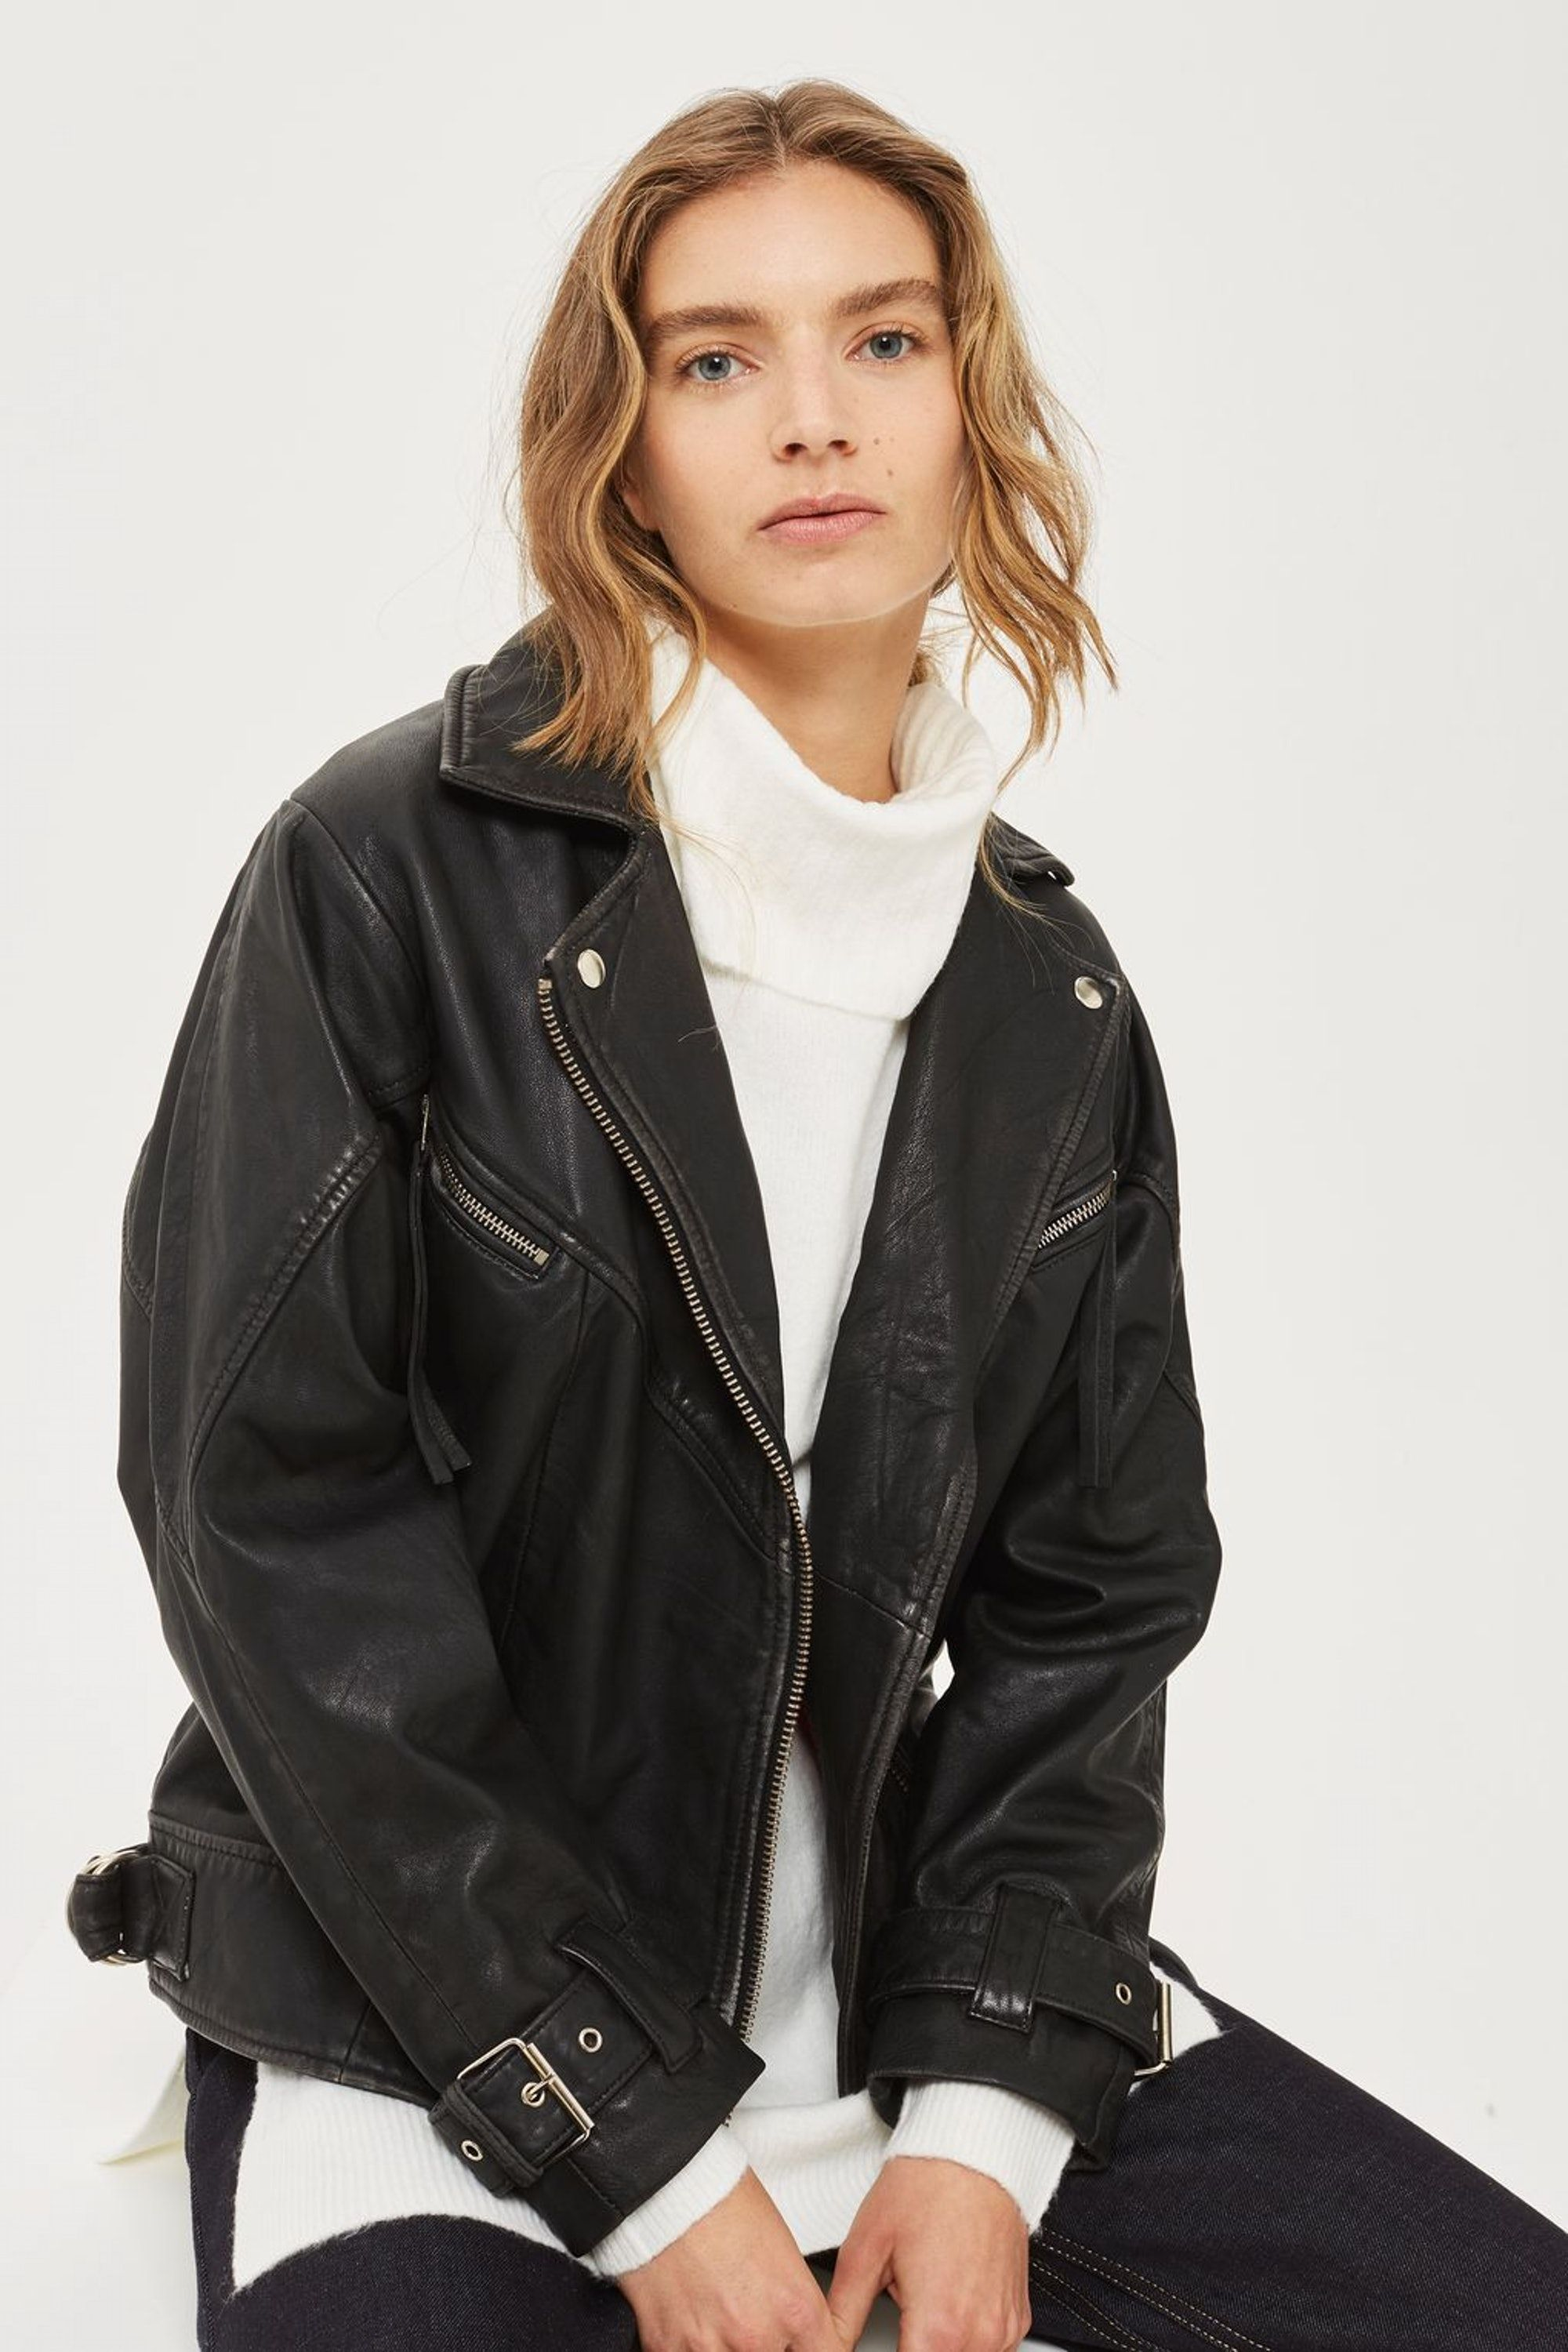 19 Transitional Jackets For Whatever Weather Fall 2017 Gives You Asos Leather Jacket Best Leather Jackets Leather Jacket [ 3000 x 2000 Pixel ]